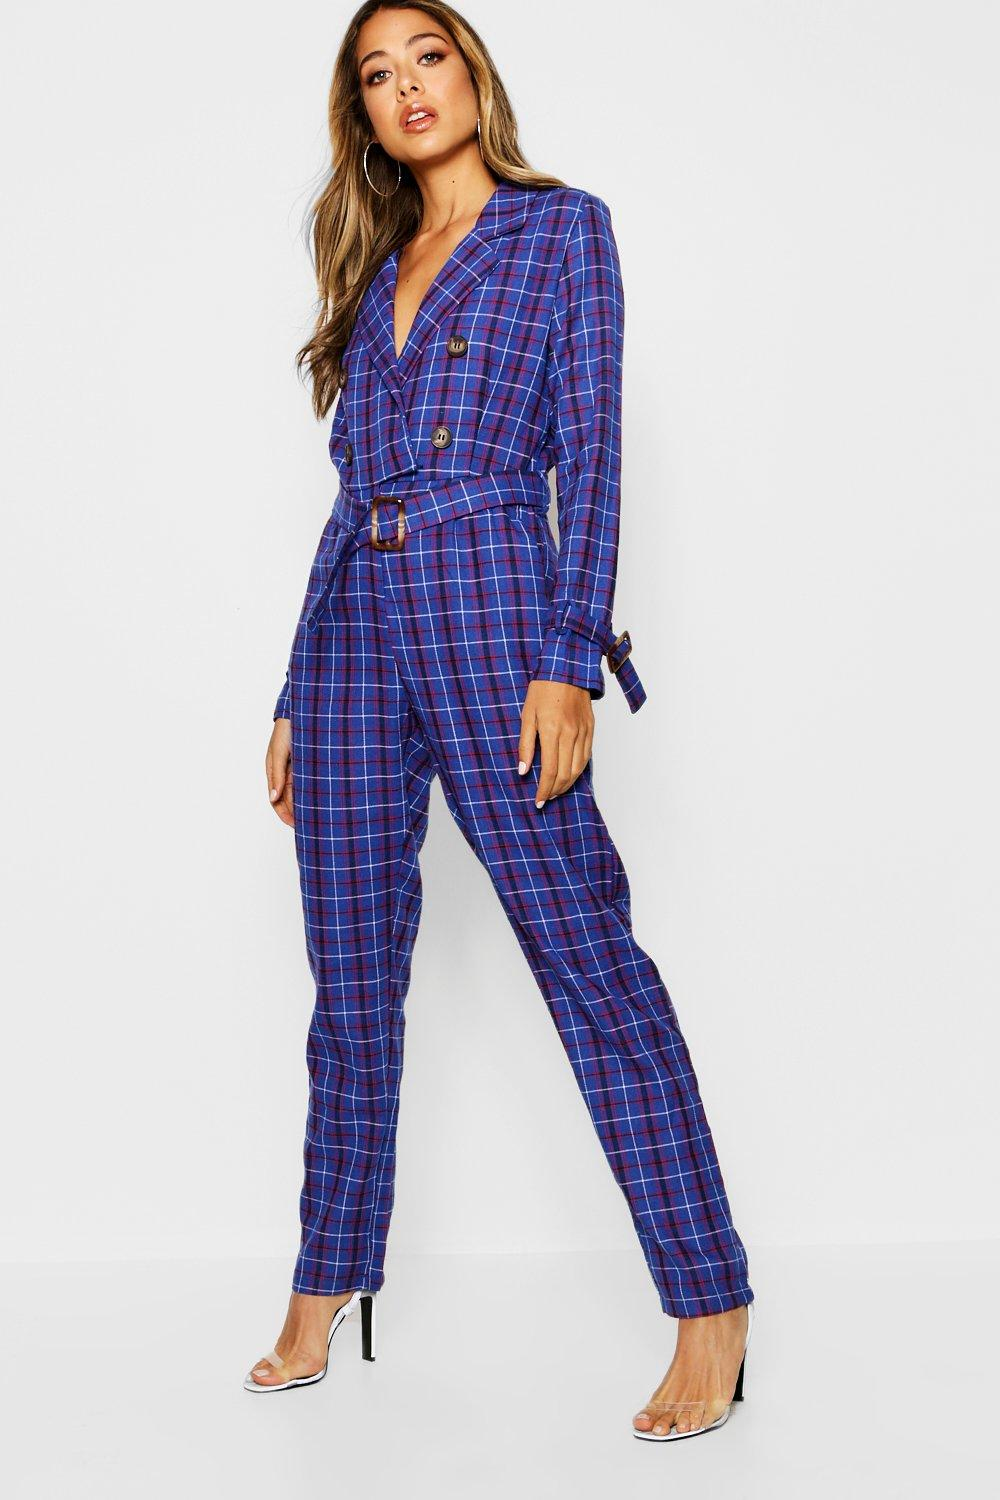 61e29b2ae029 Tartan Check Belted Collar Jumpsuit. Hover to zoom